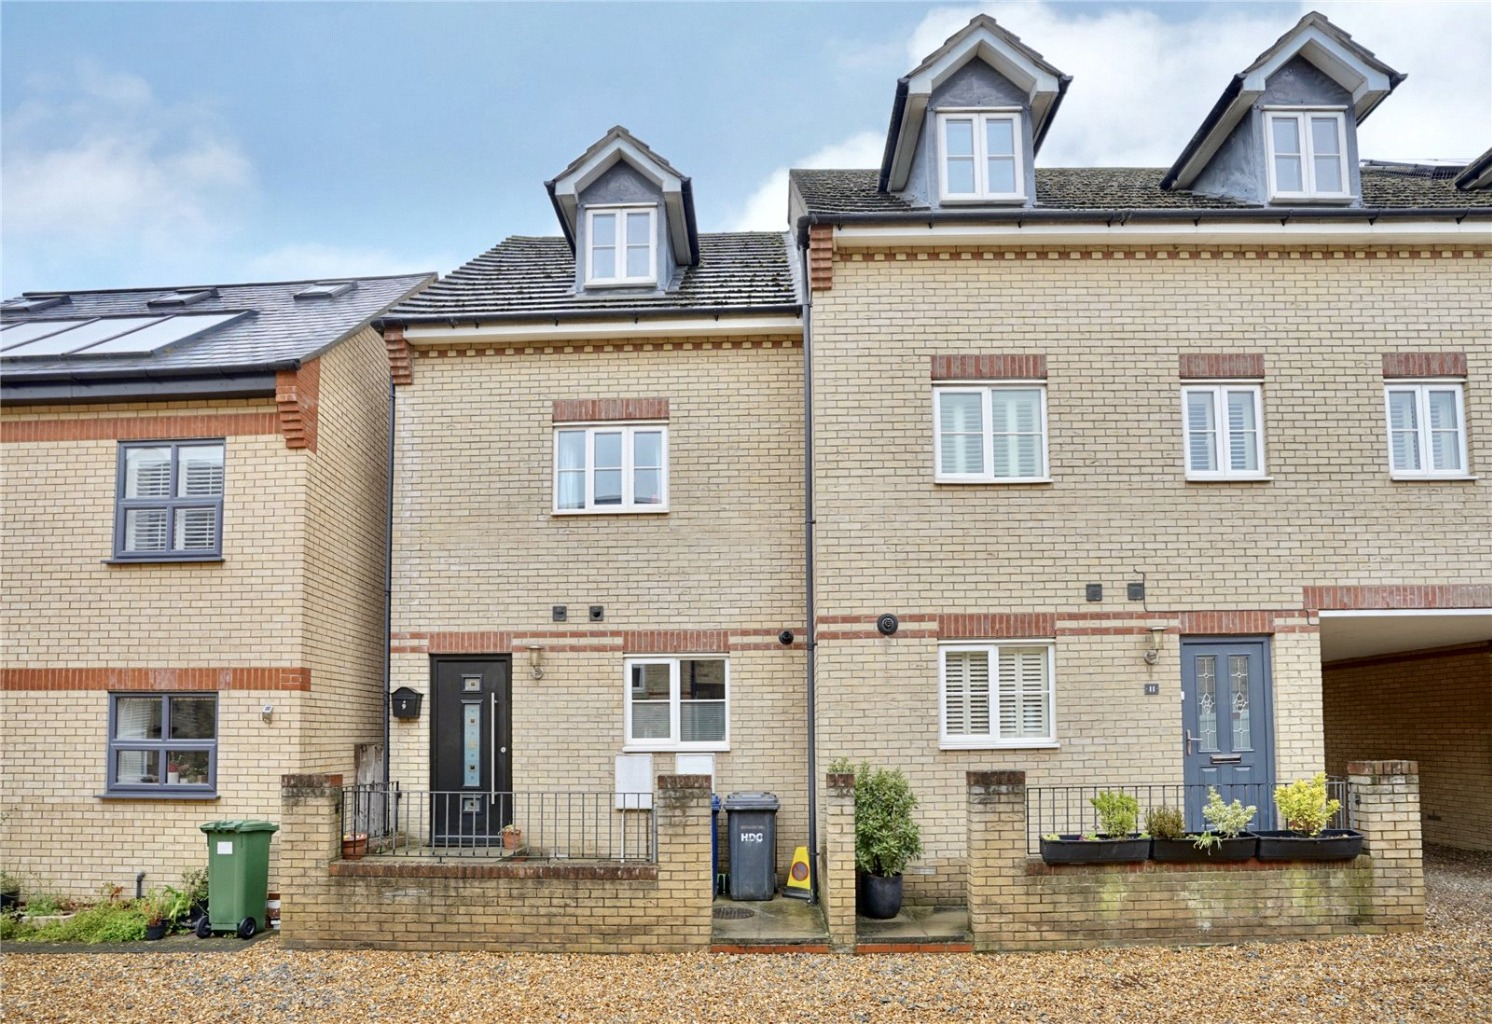 3 bed end of terrace house for sale in West Street, St. Neots  - Property Image 1